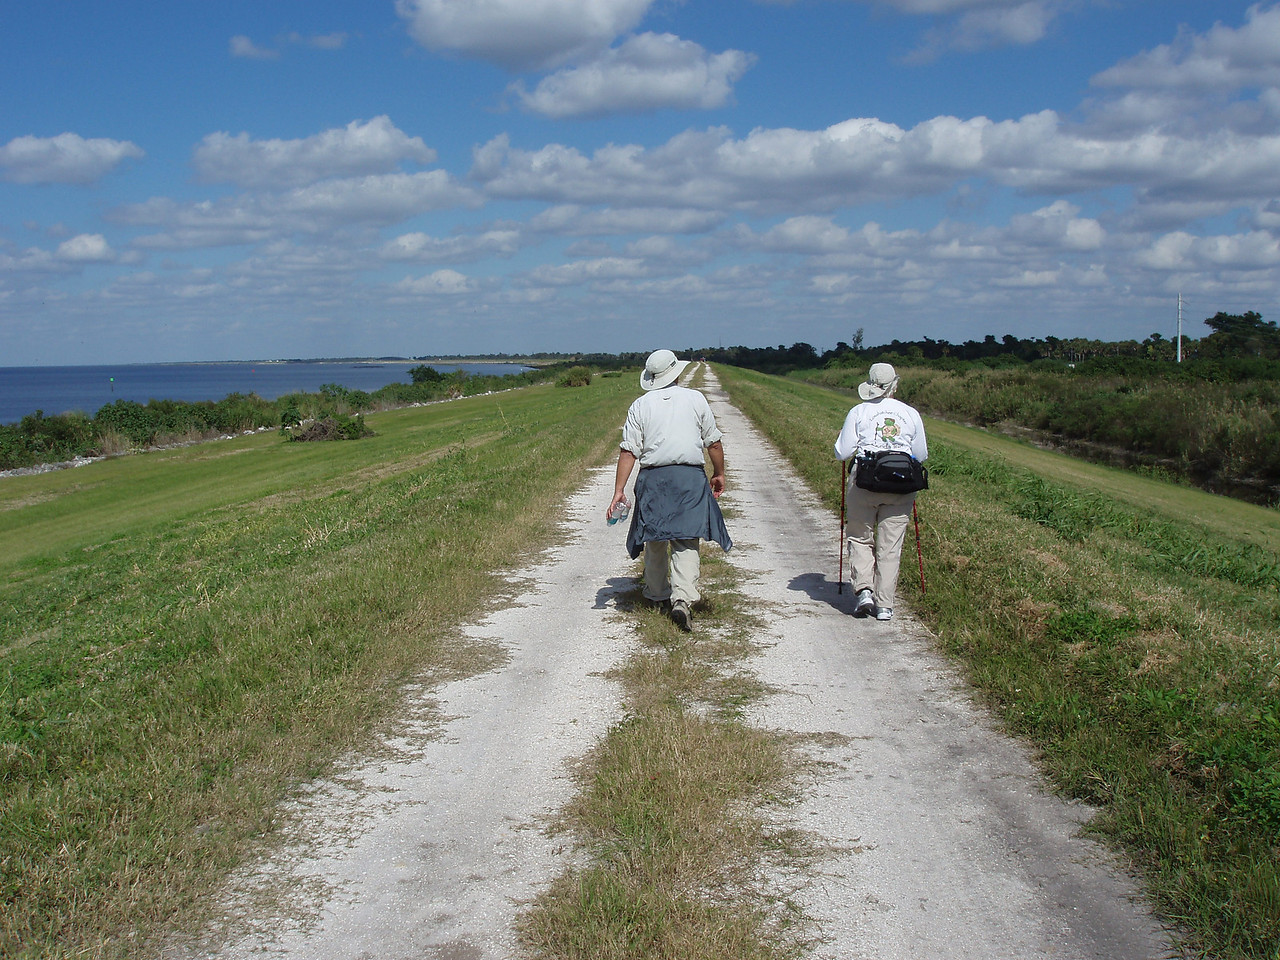 Hikers on the long stretch to Port Mayaca<br /> PHOTO CREDIT: Robert Coveney / Florida Trail Association